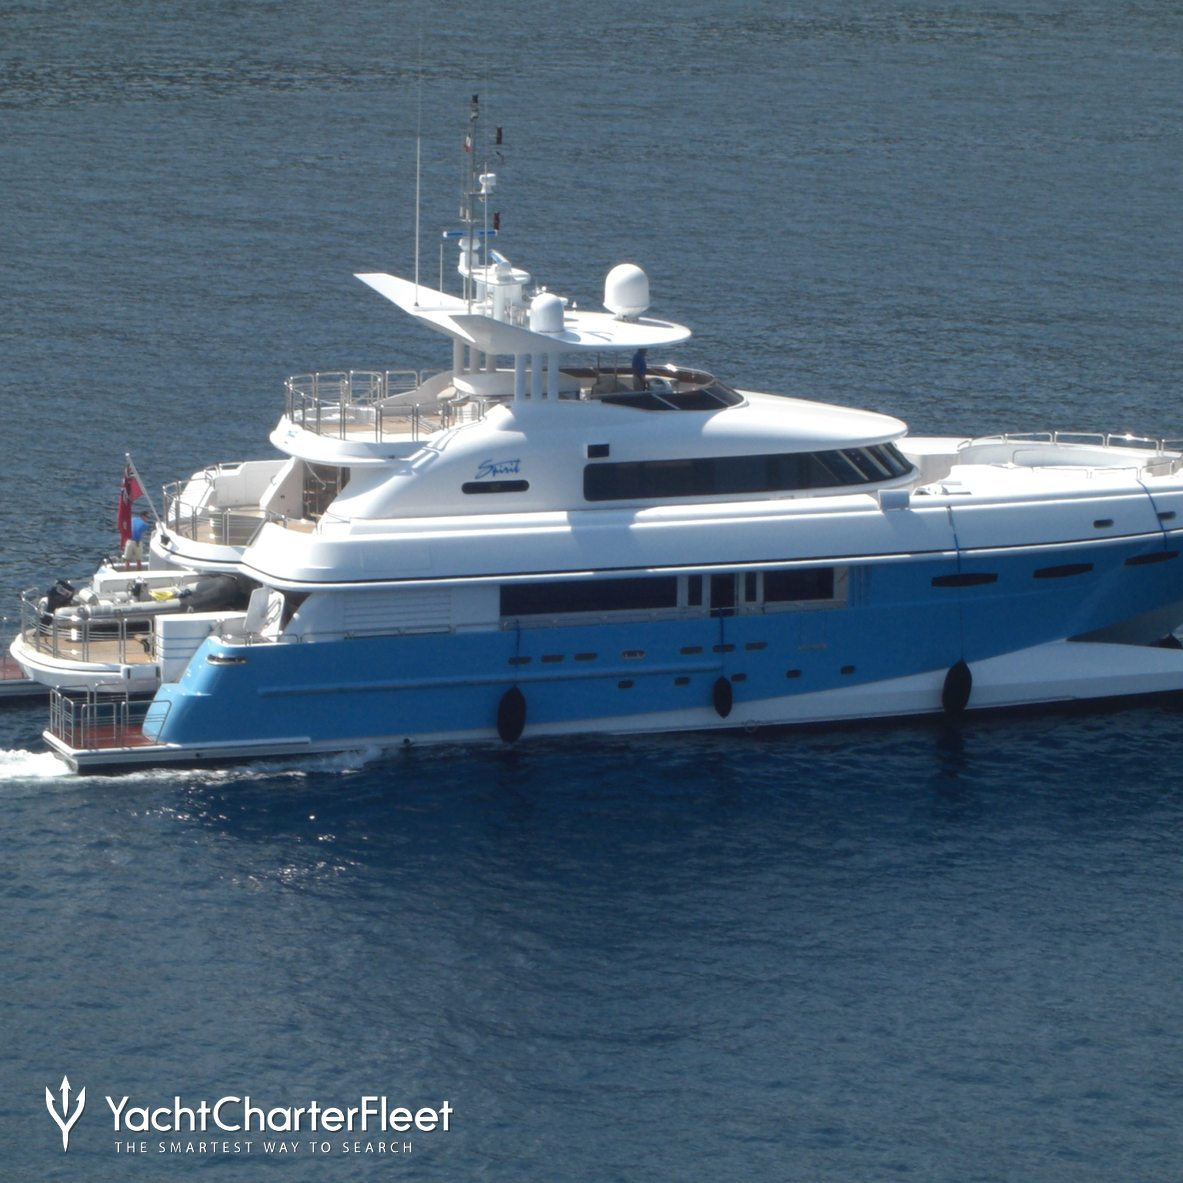 Spirit Yacht Photos 35m Luxury Motor Yacht For Charter